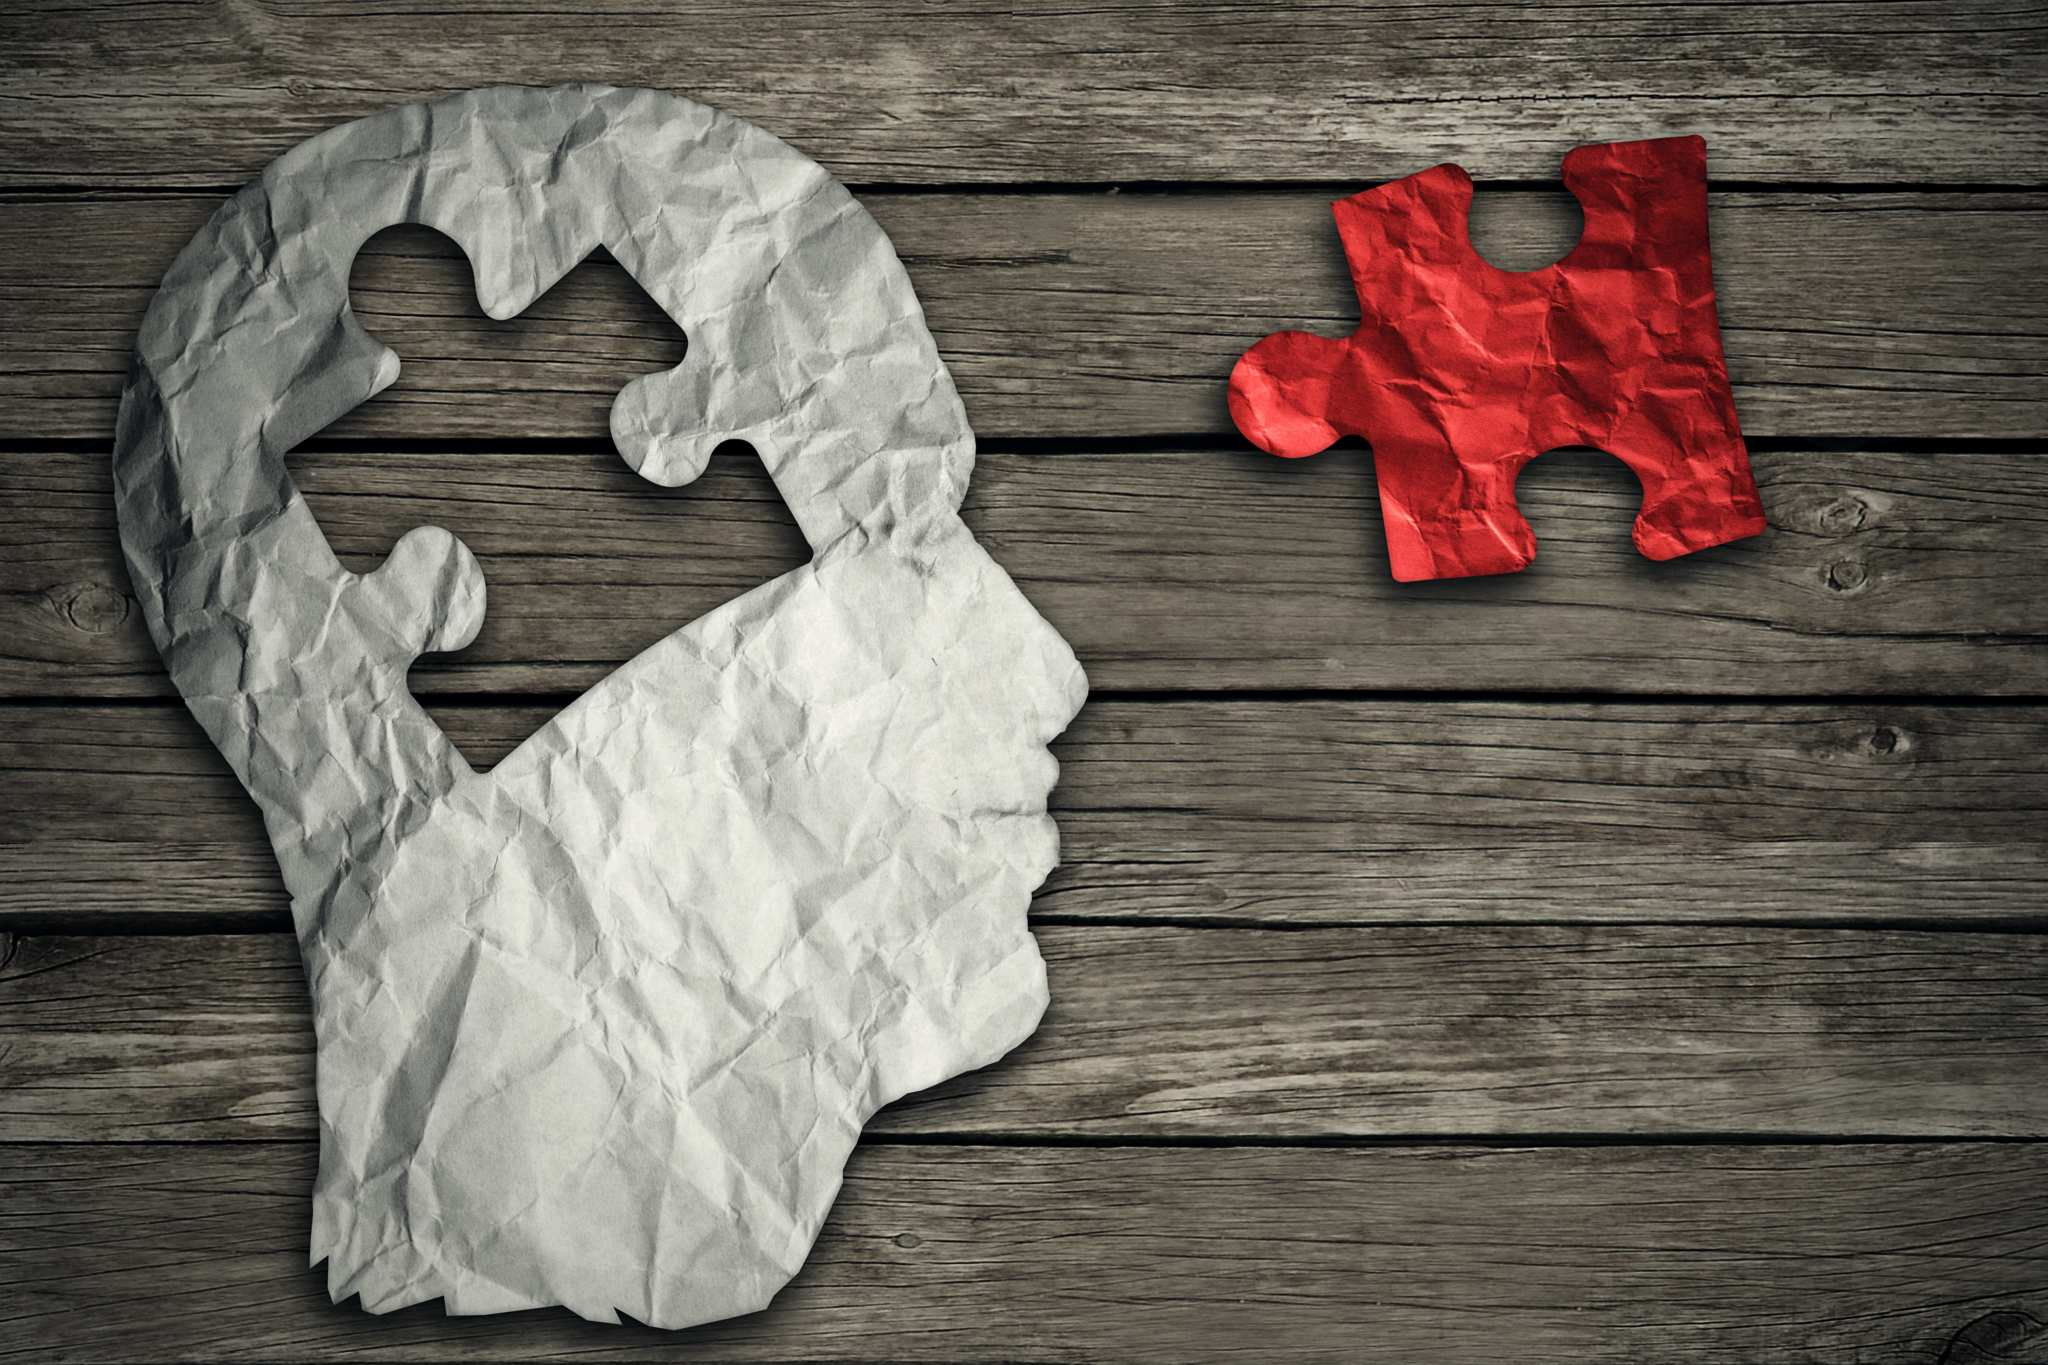 A white paper cutout of a human head, missing a puzzle piece shaped hole, sits on a wooden surface. The puzzle piece, colored red, sits nearby. Though still theoretical, clinical endocannabinoid deficiency could be a common contributor to numerous conditions, from fibromyalgia to migraines.